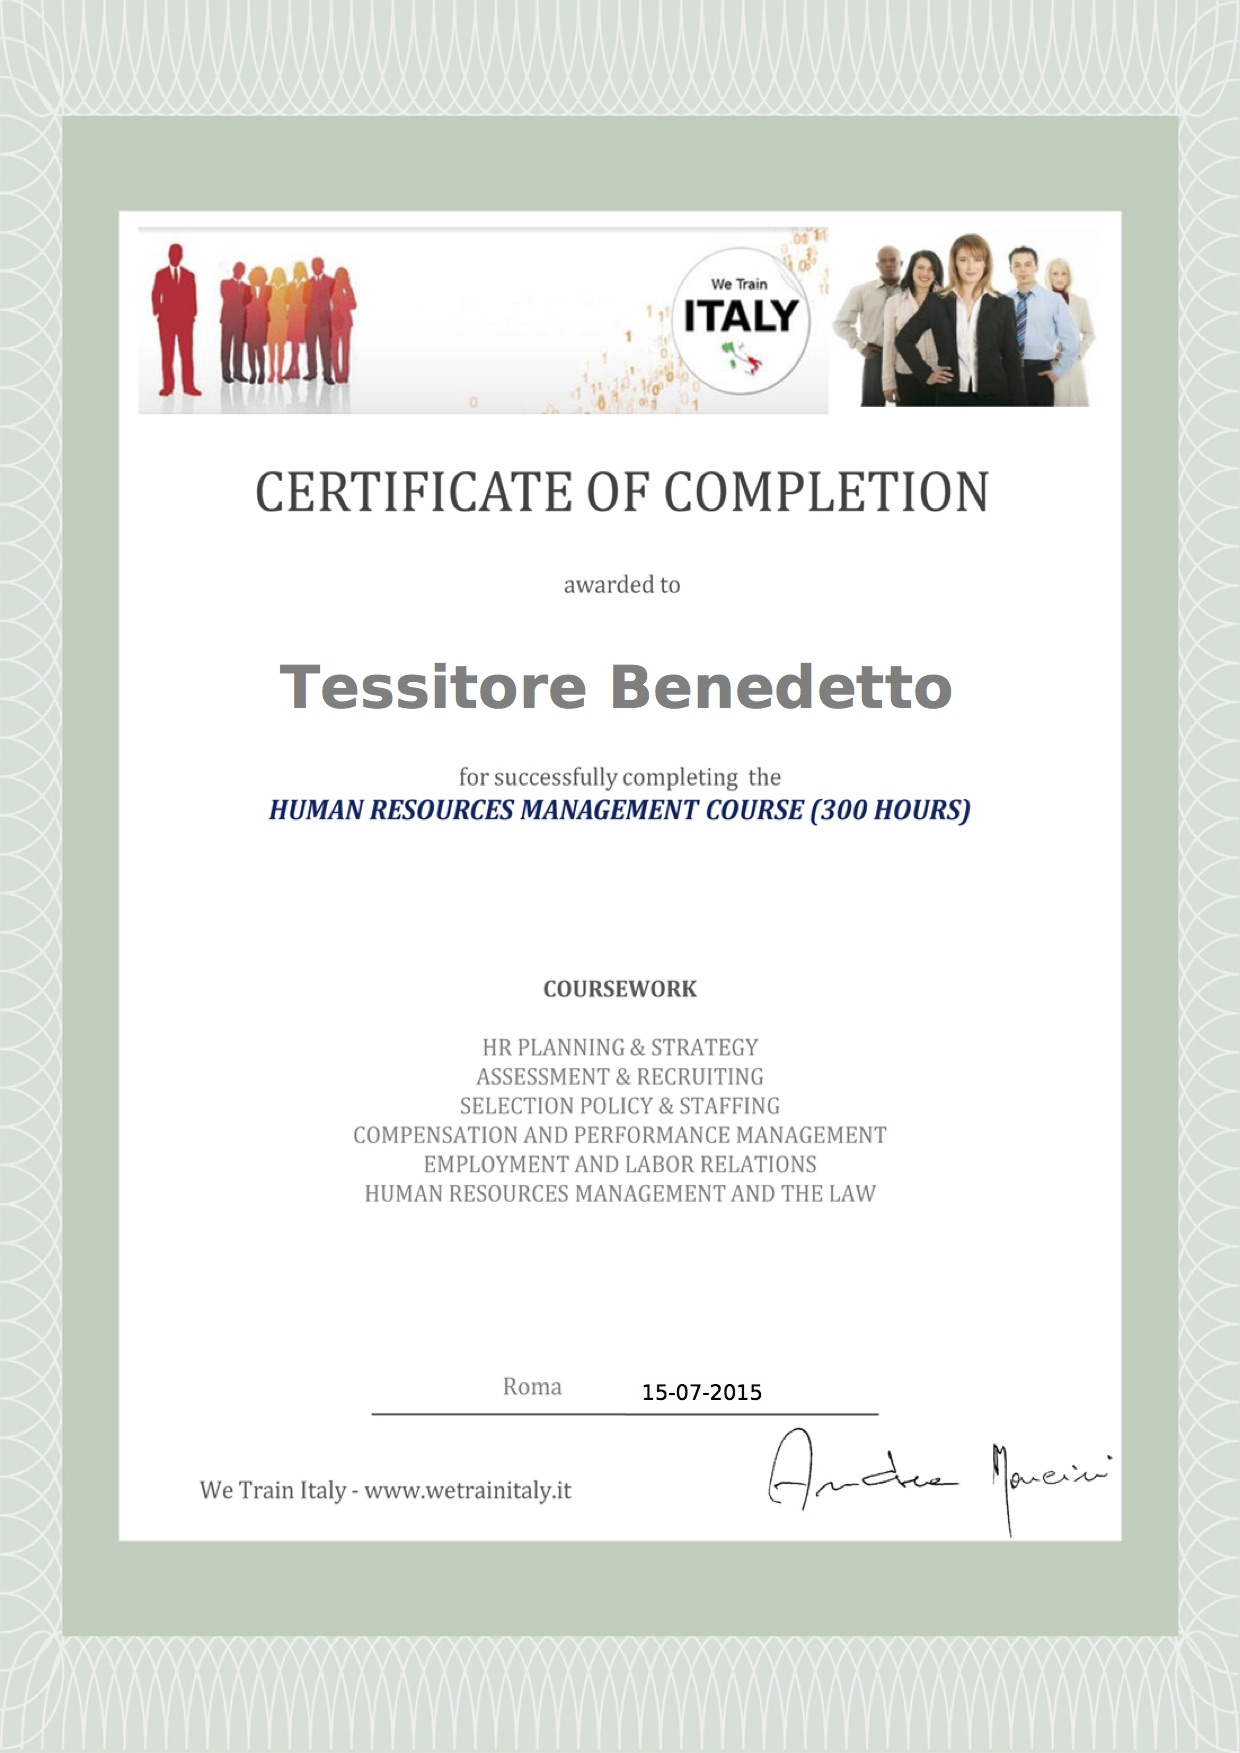 Certificate completion course Human Resources Management